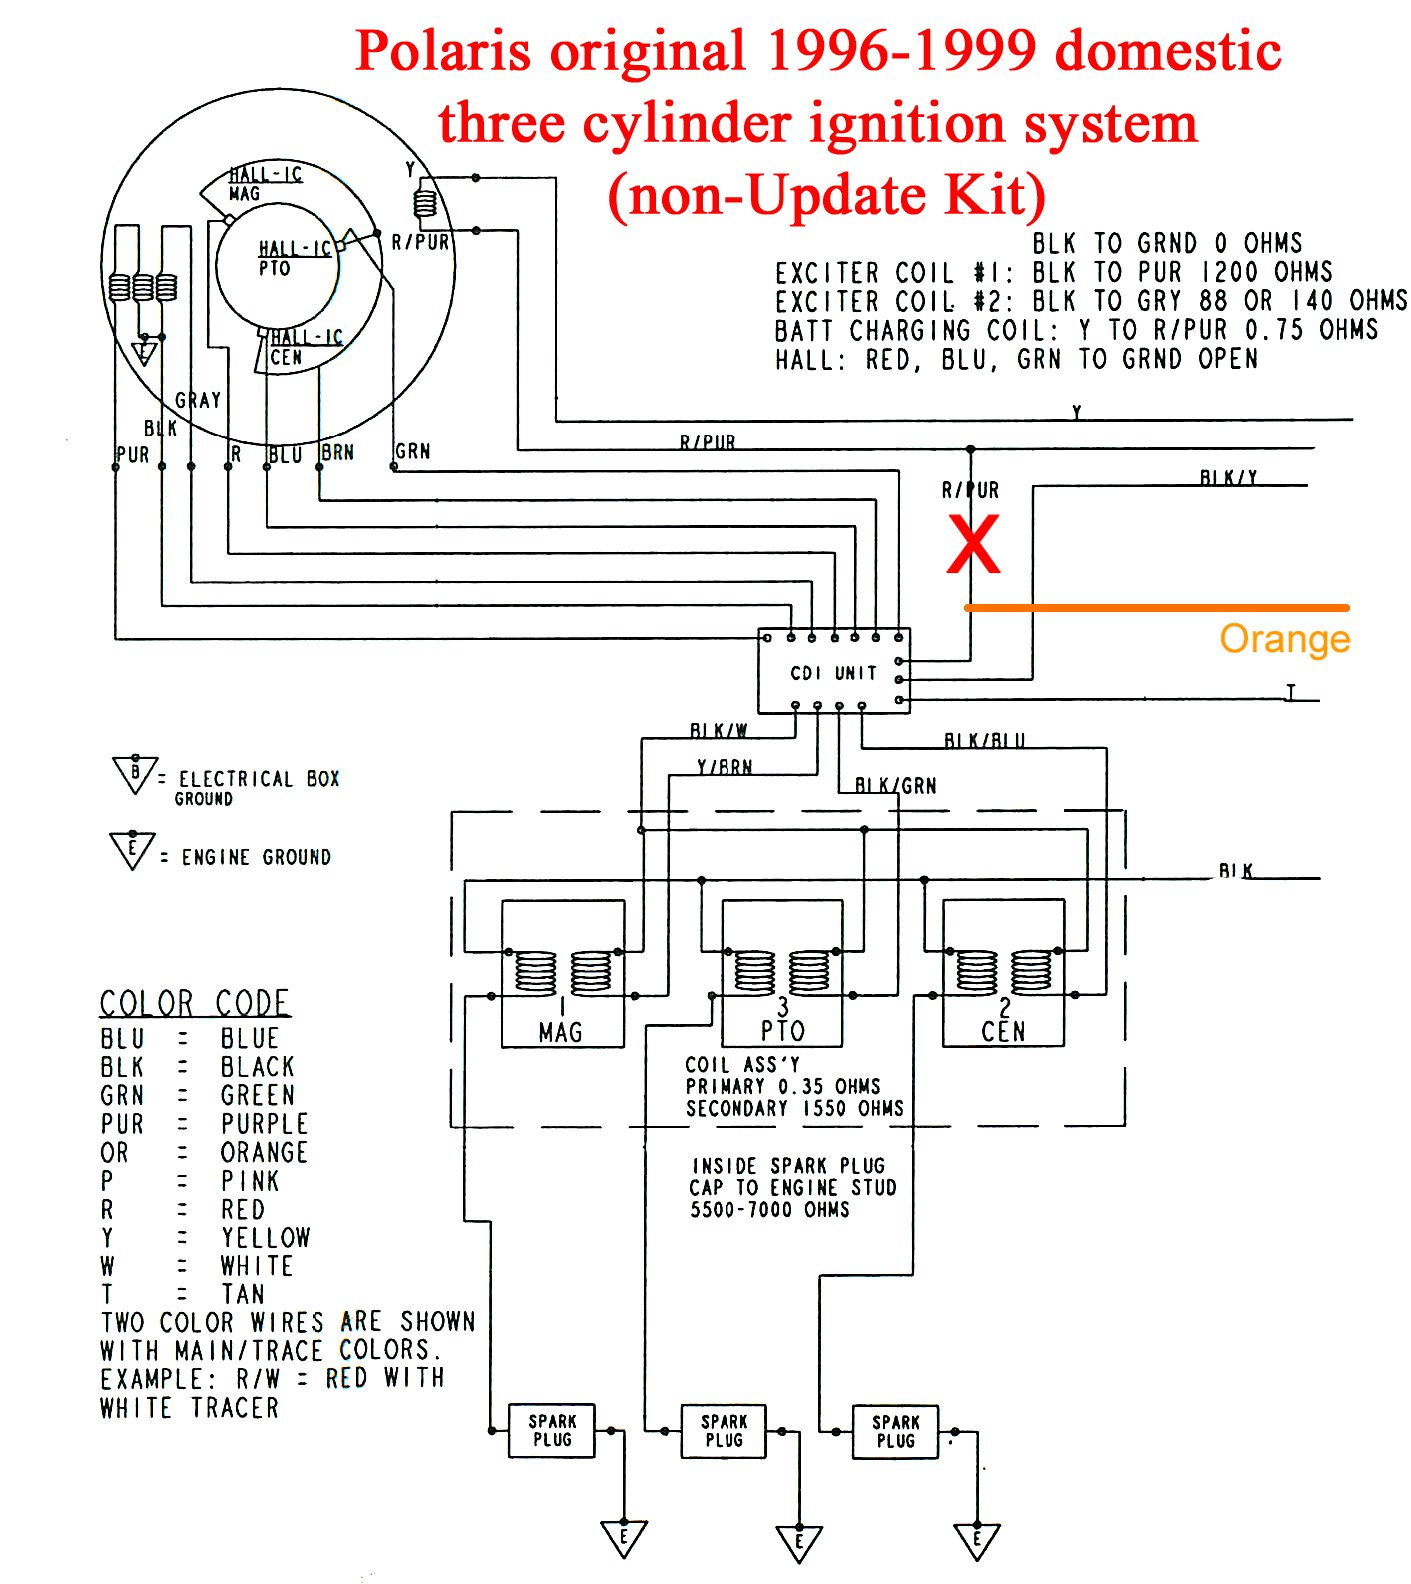 polaris wiring diagram Download-i do have a 1996 polaris sl700 i need information regarding the rh justanswer GM Ignition Switch Wiring Diagram GM Ignition Switch Wiring Diagram 17-r